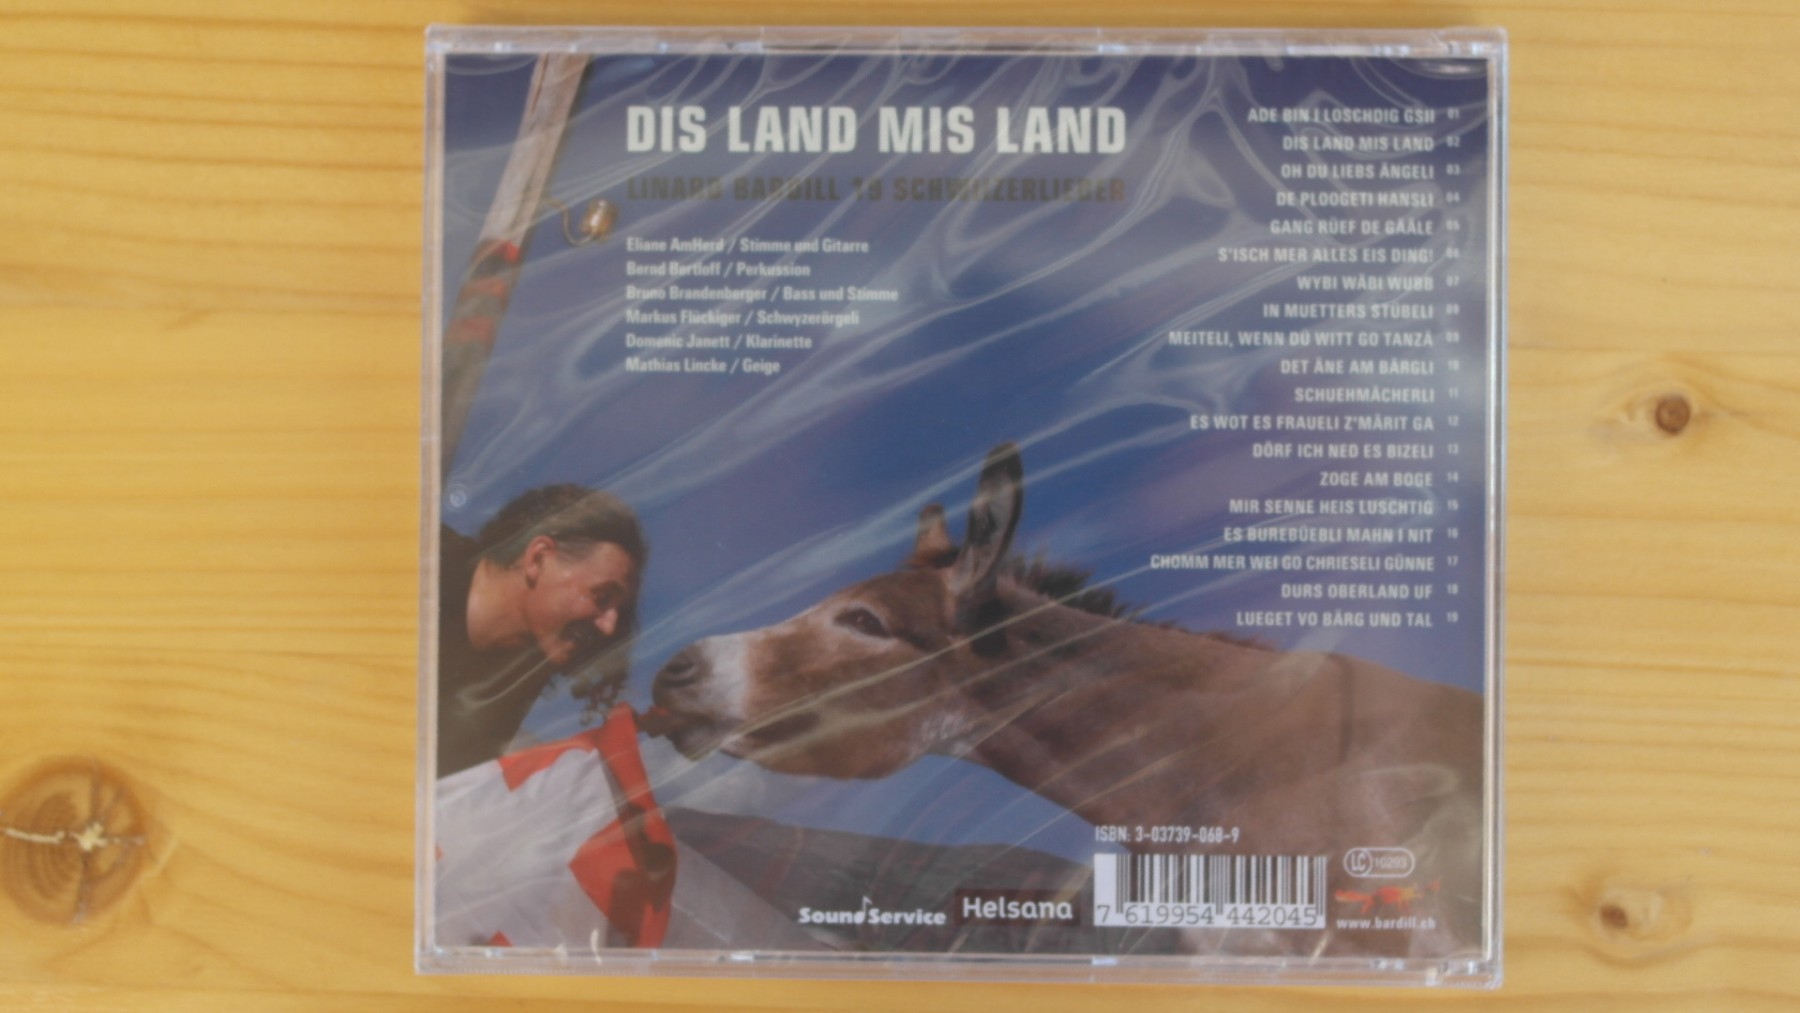 Mis Land Dis Land, Linard Bardill - Swiss Music CD